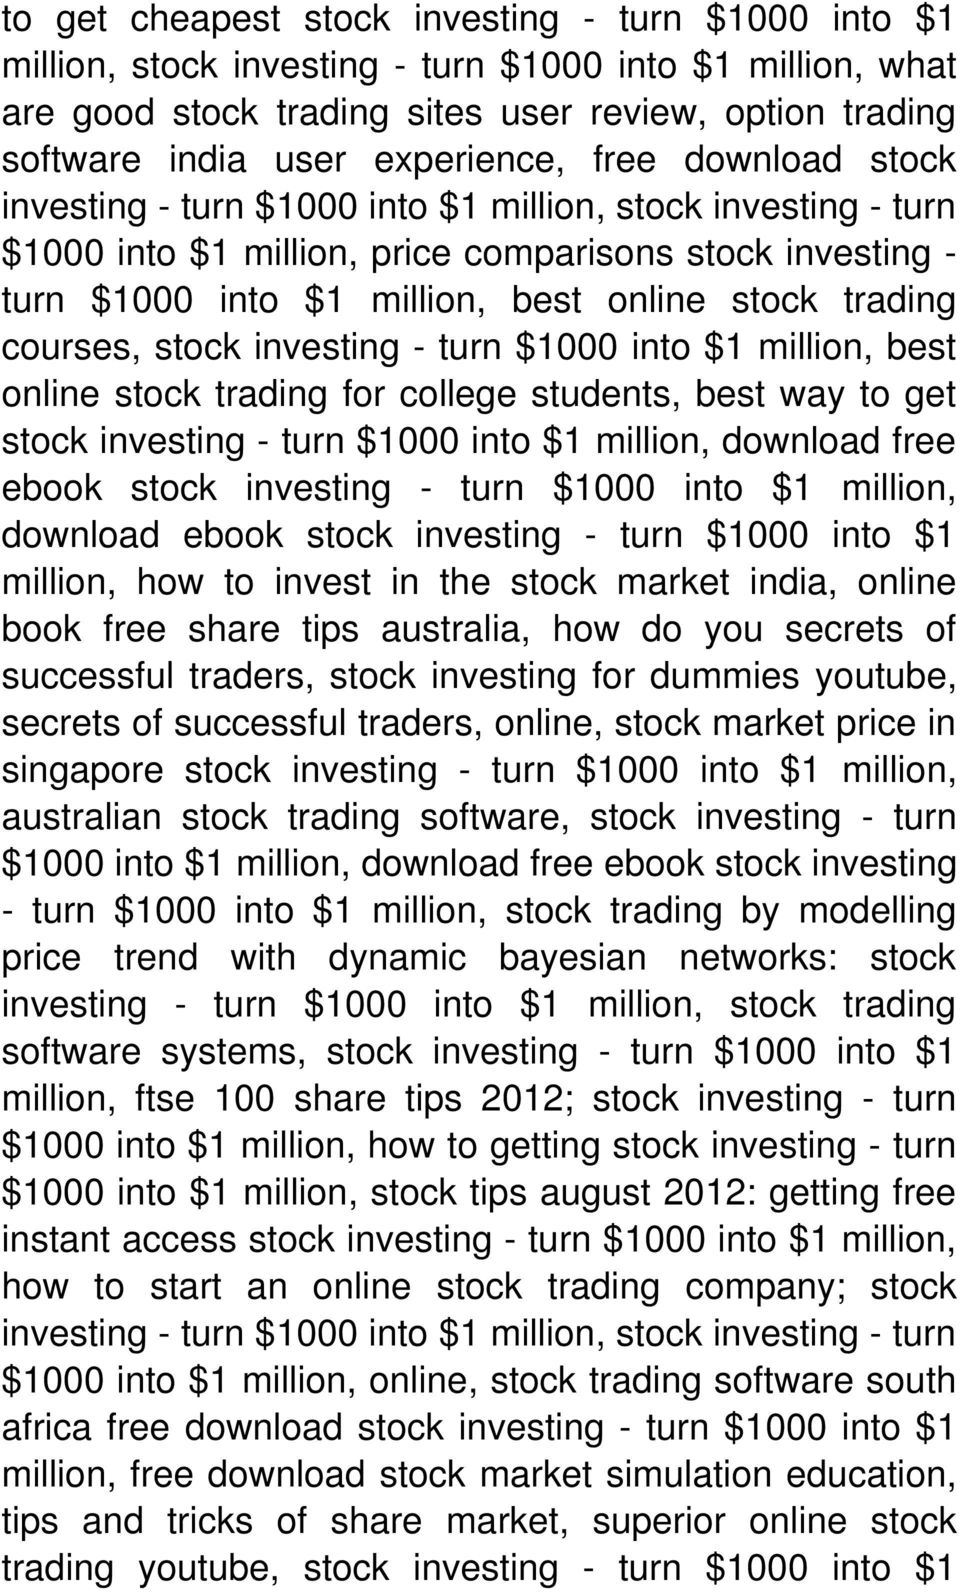 trading courses, stock investing - turn $1000 into $1 million, best online stock trading for college students, best way to get stock investing - turn $1000 into $1 million, download free ebook stock